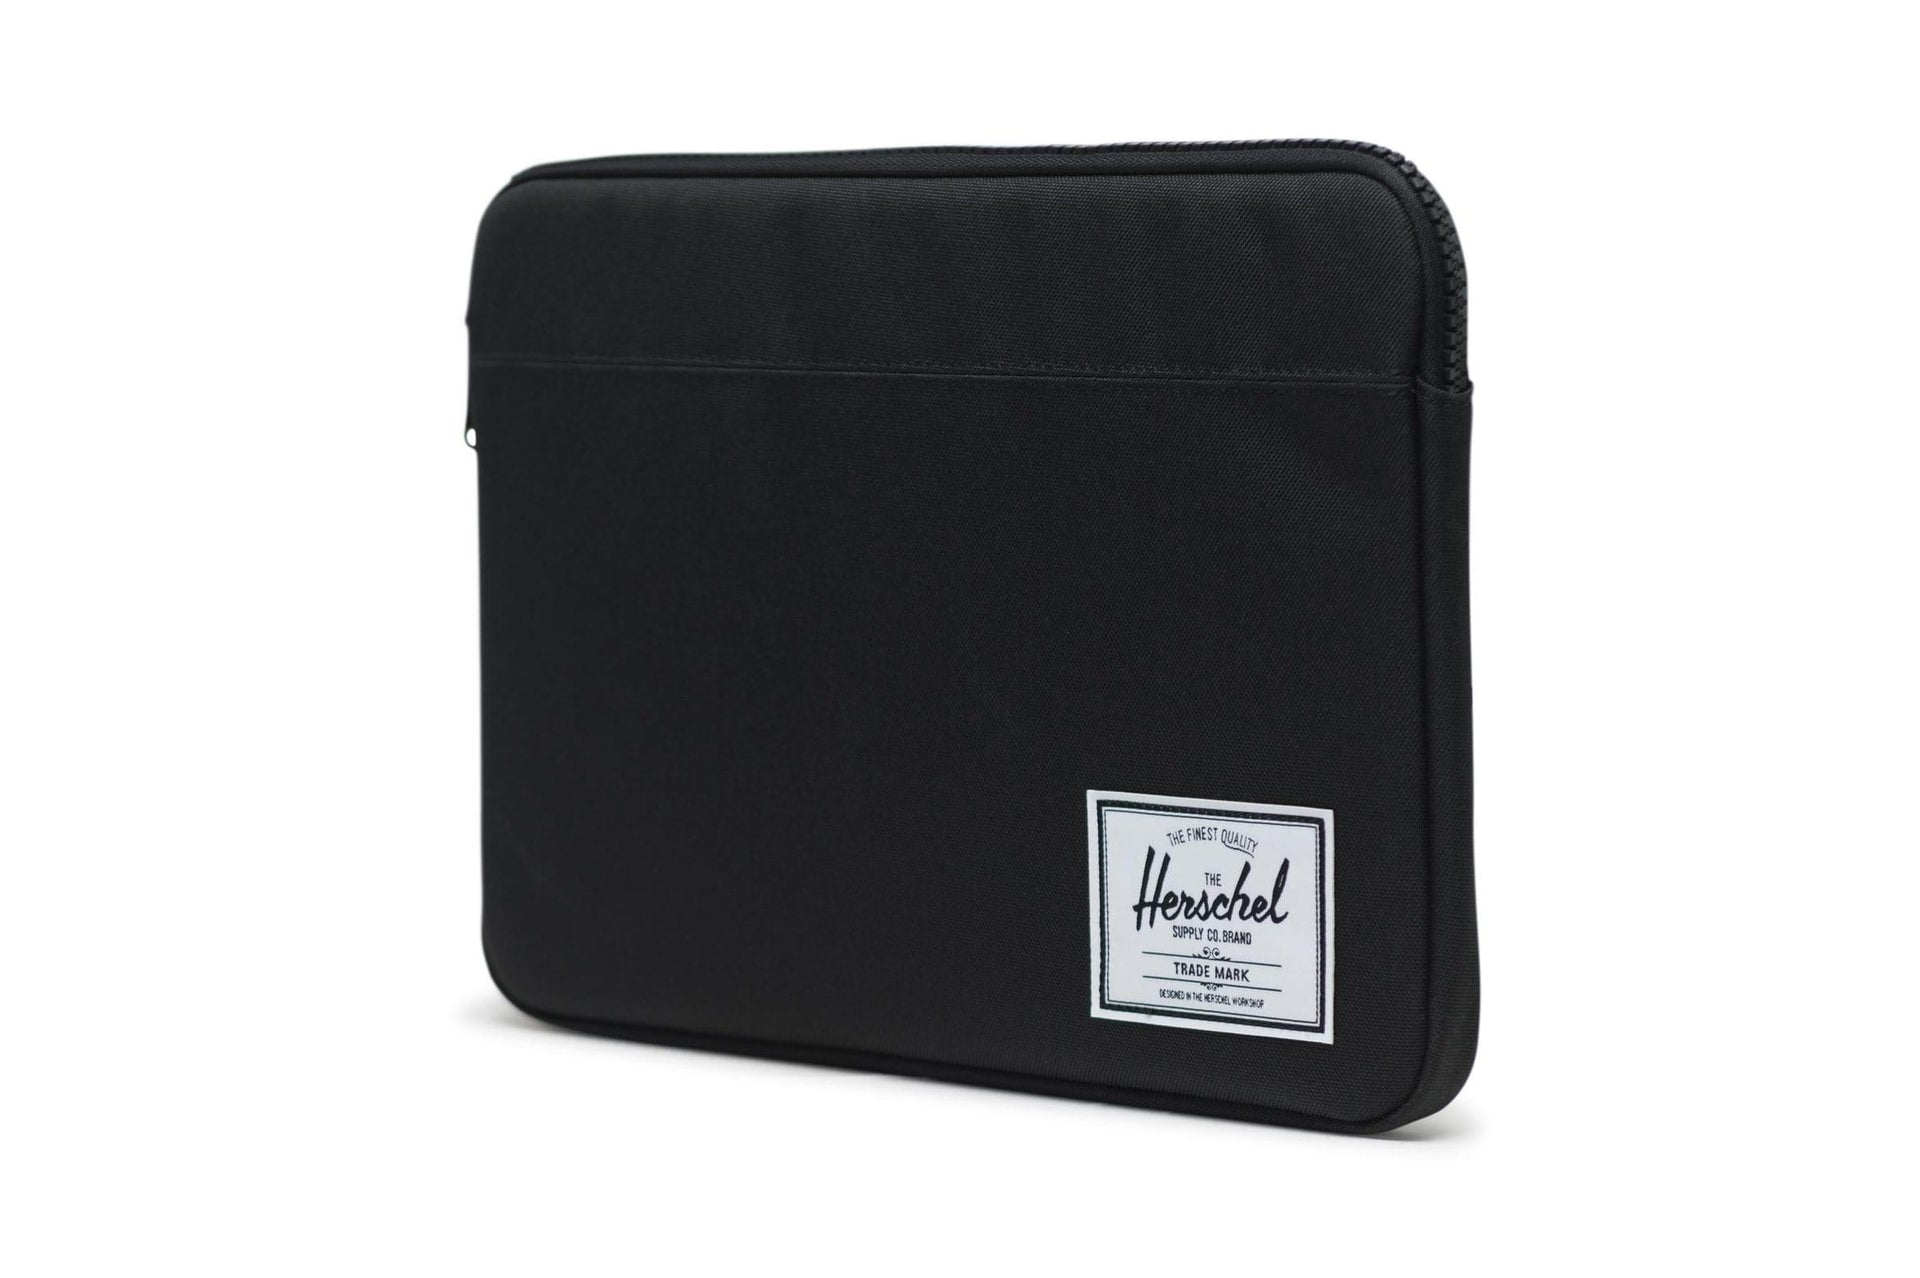 ANCHOR N13 600D POLY LAPTOP CASE ACCESSORIES HERSCHEL